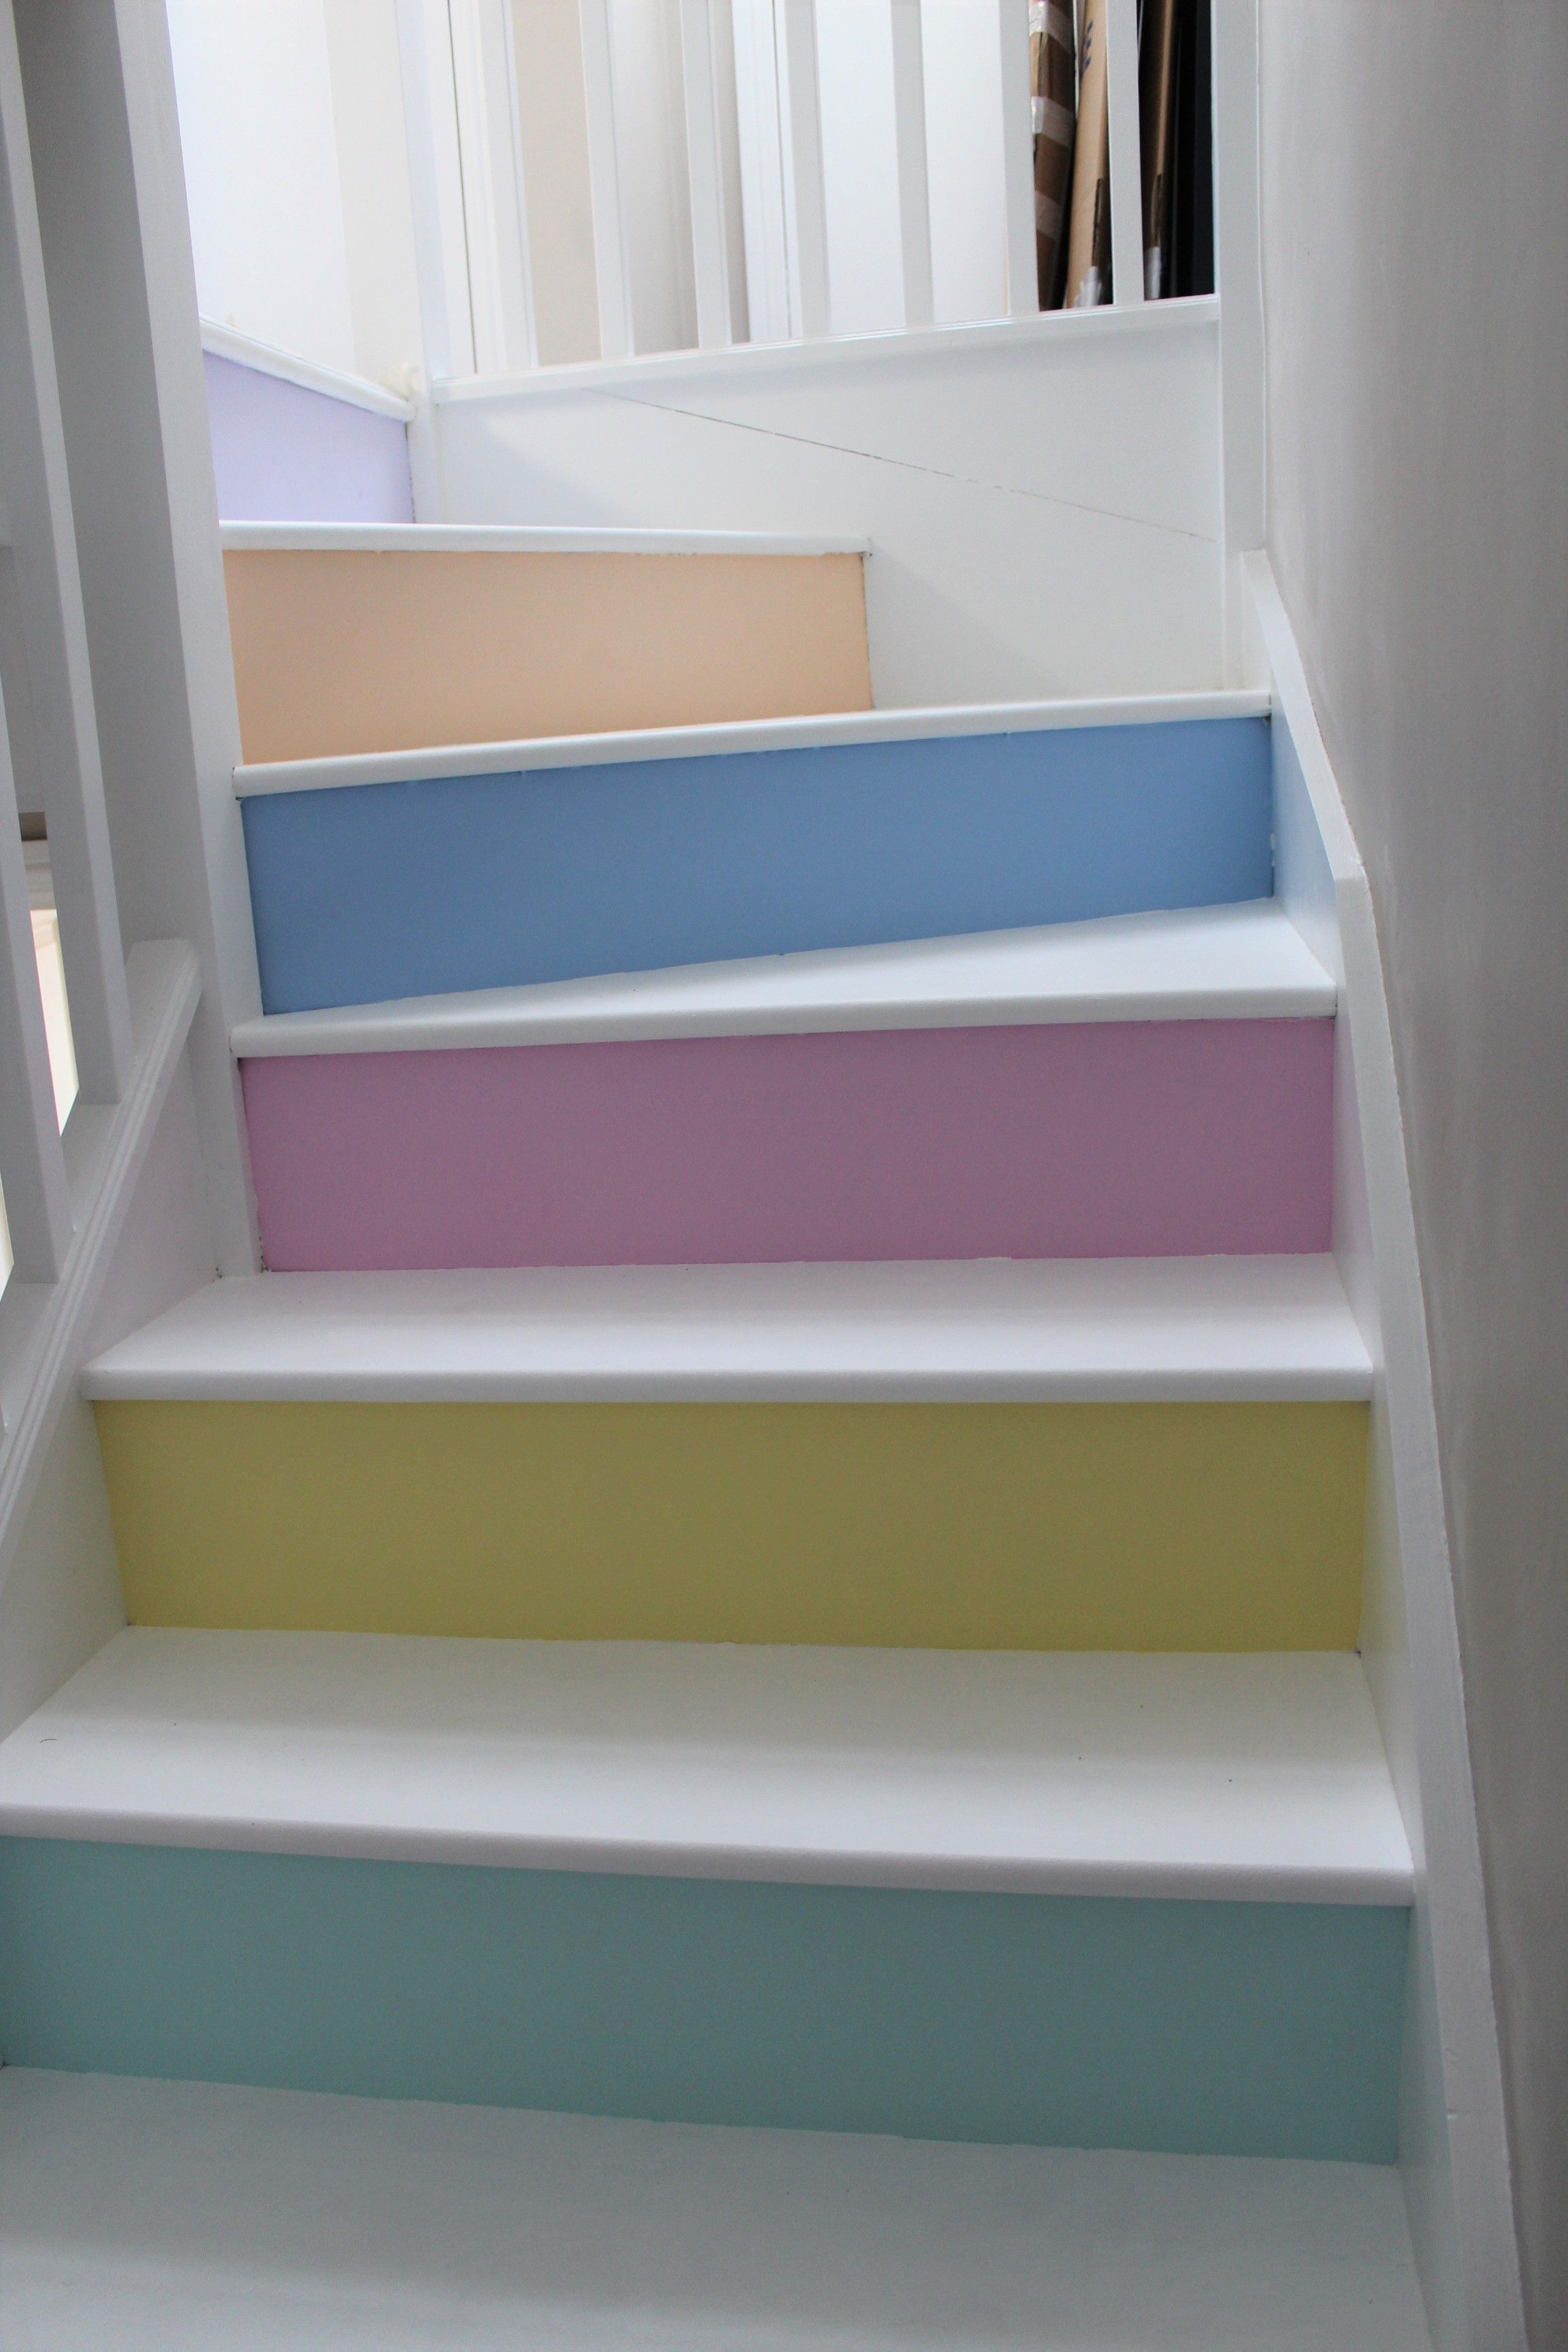 Pastel Home My Stairs White Rustoleum Chalky Floor Paint On